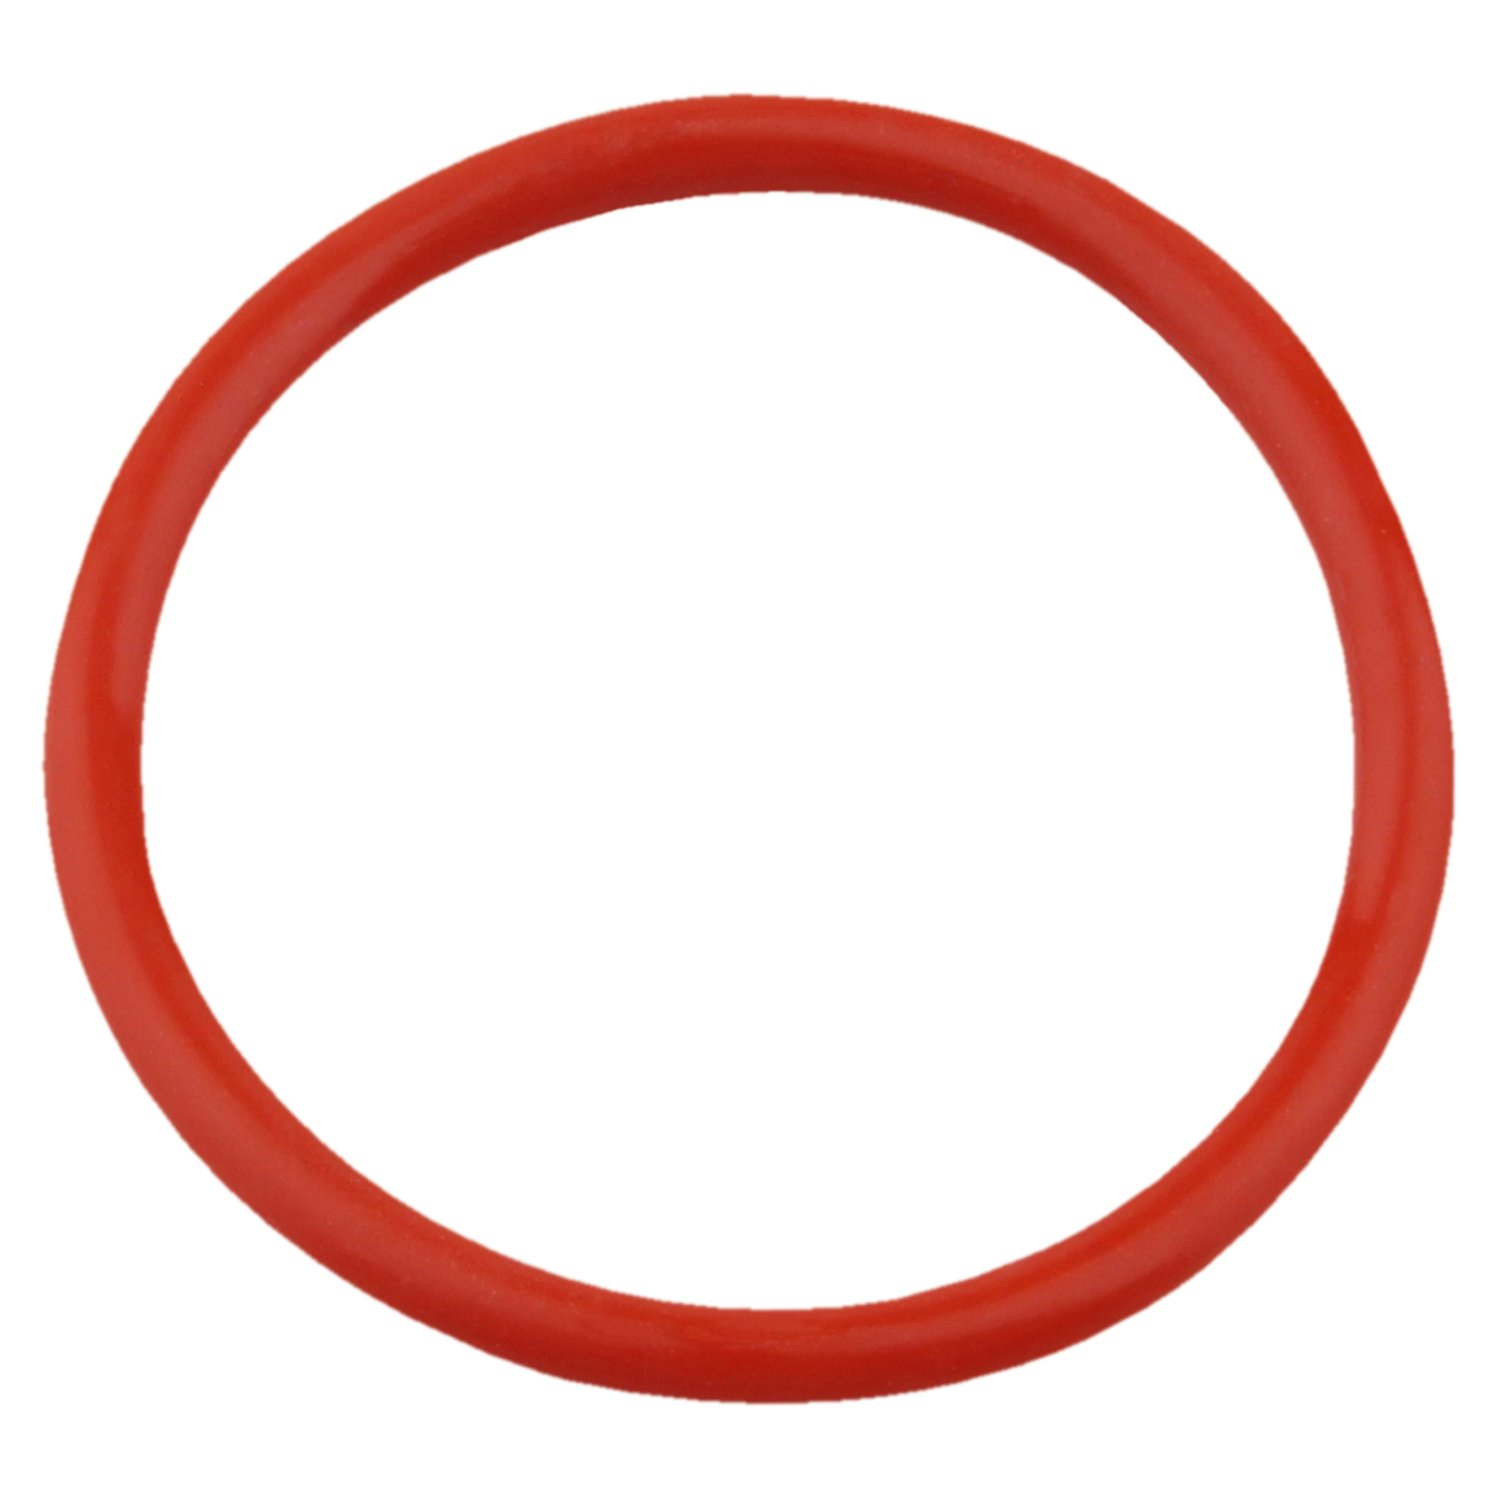 70A Durometer Pack of 10 2 OD,1//8 Width DERNORD Silicone O-Ring,1-3//4 ID Red